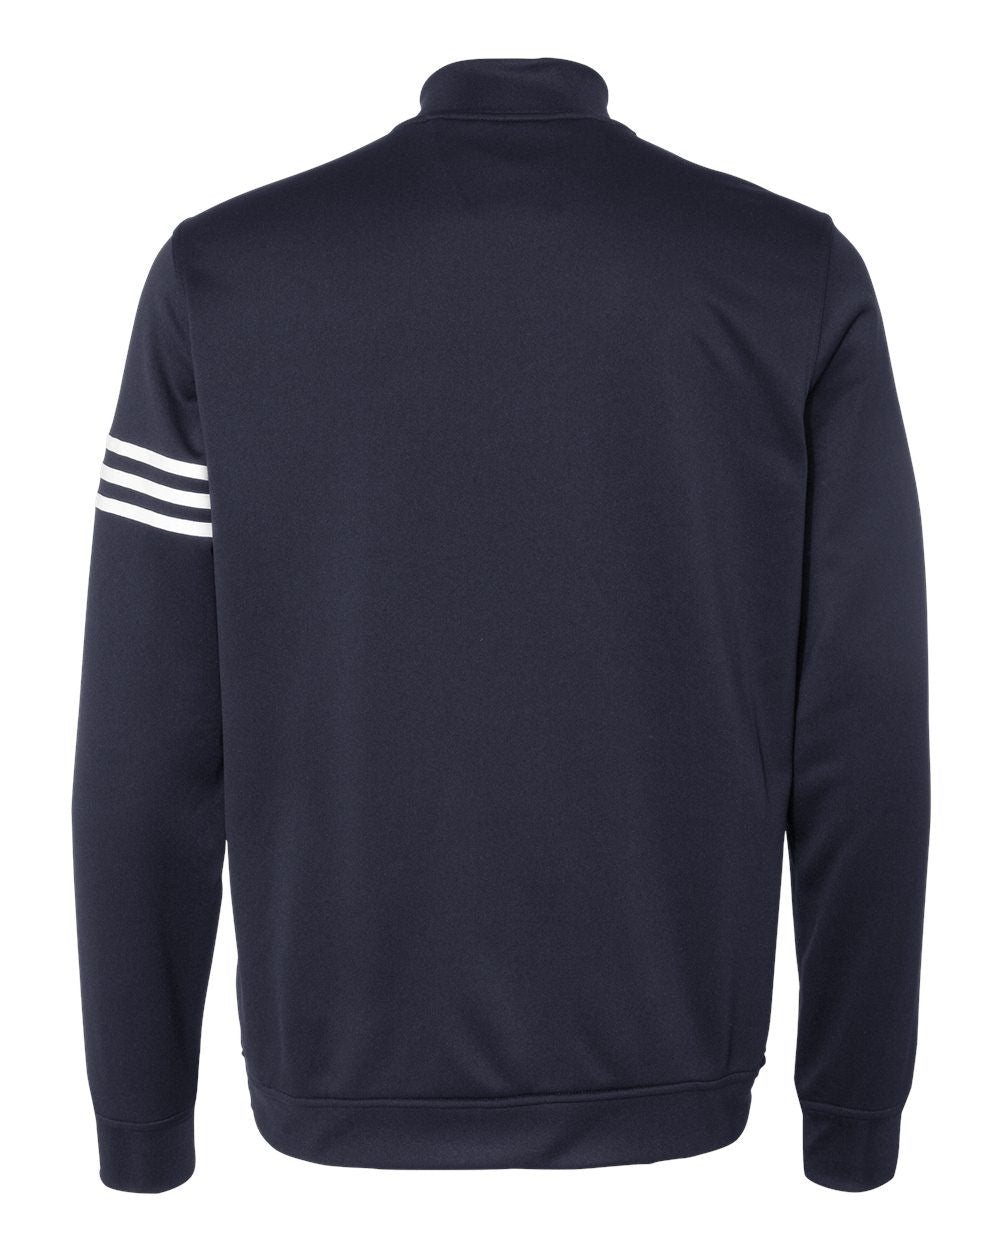 Golf ClimaLite  Pullover by Adidas